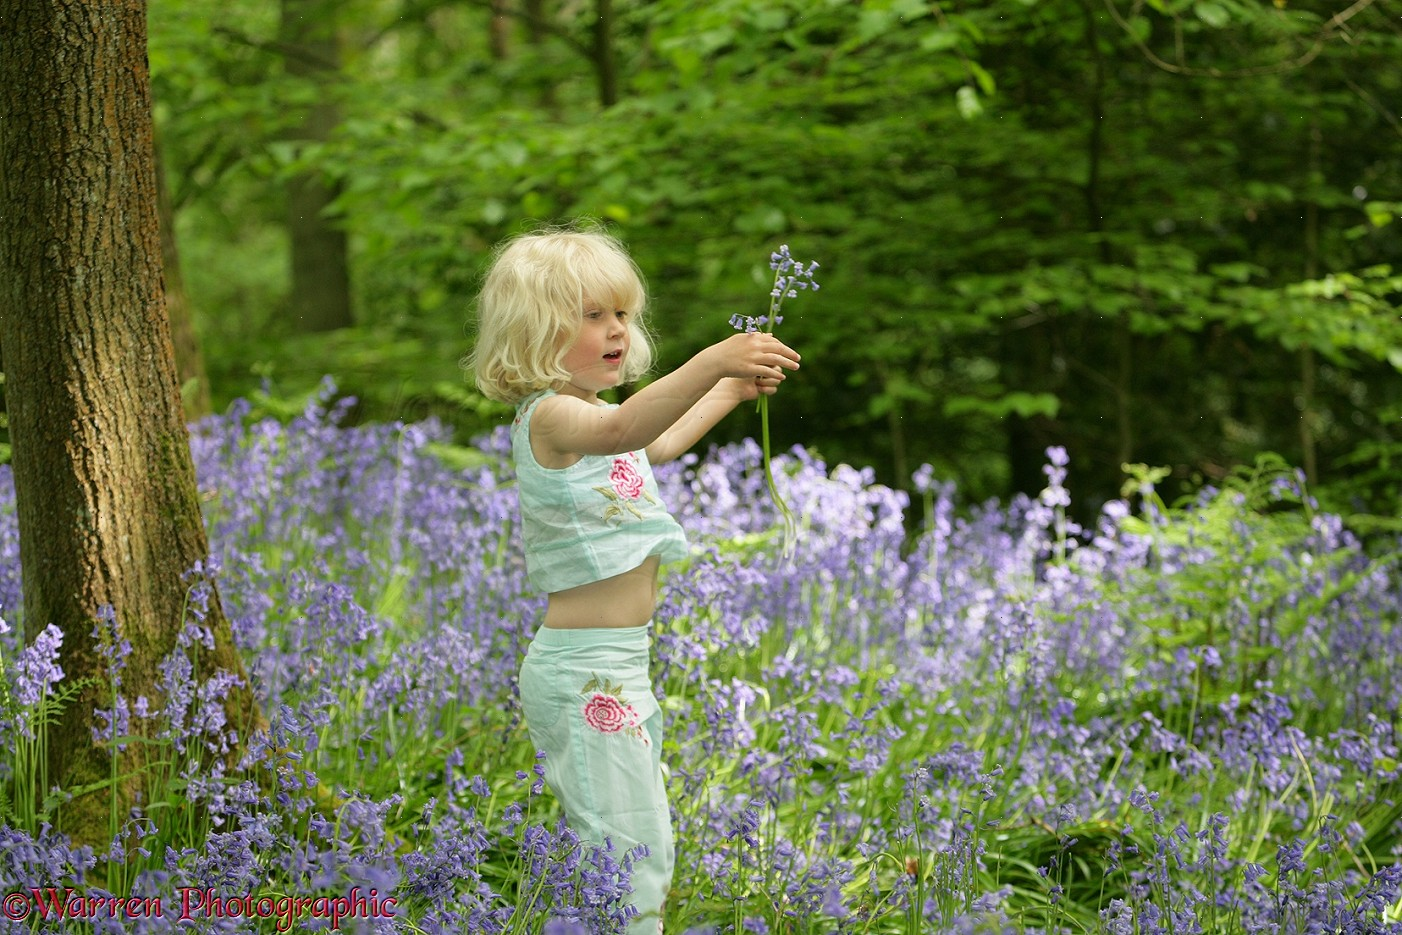 us map for children with 12571 Little Girl In Bluebell Wood on Bibione likewise Mauritius Island Guide I 83 also Prayer Request as well 12571 Little Girl In Bluebell Wood besides UNF4 5 6.